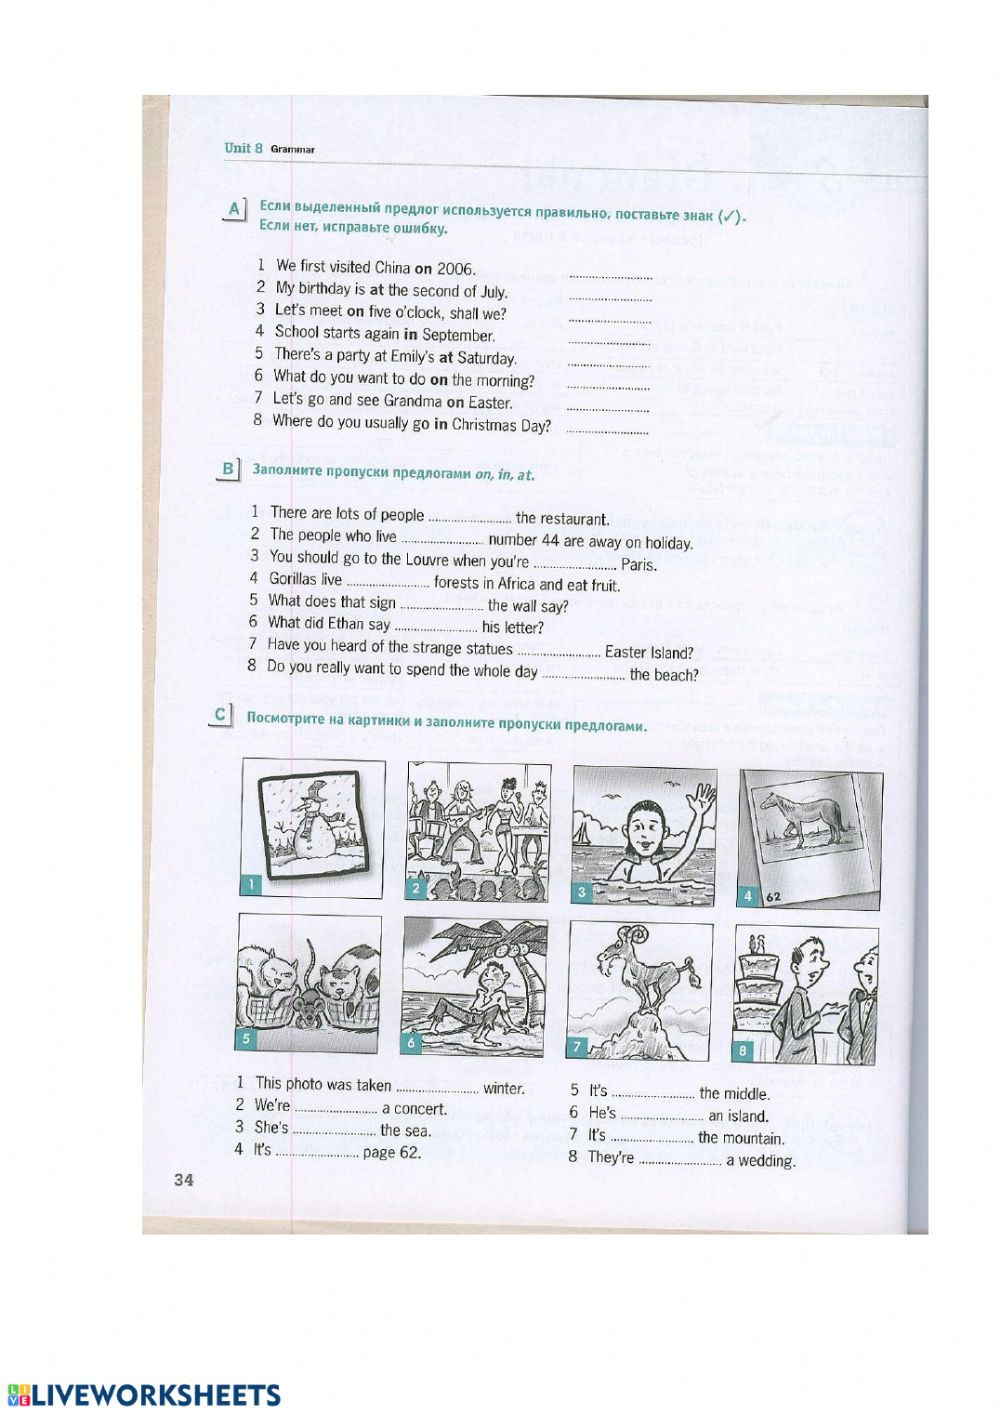 Preposition Worksheets Middle School Prepositions Prepositions All Types Online Exercise